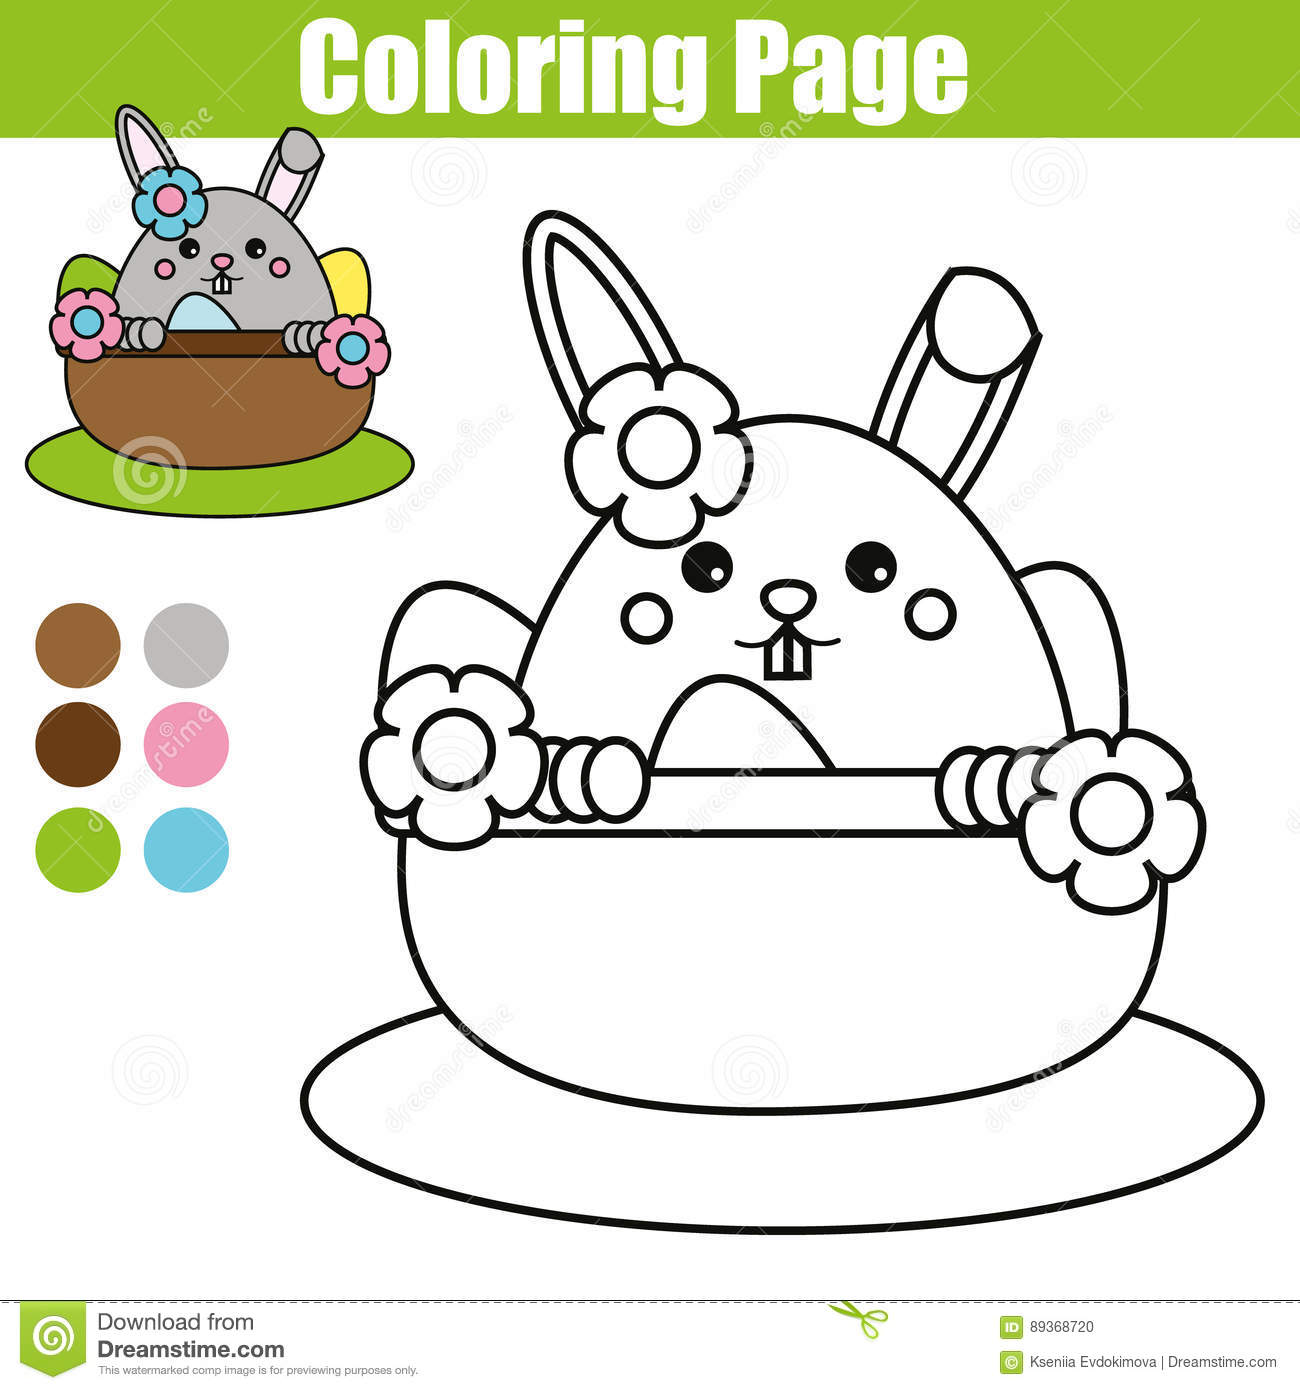 Coloring Page With Easter Bunny Character Printable Worksheet Educational Children Game